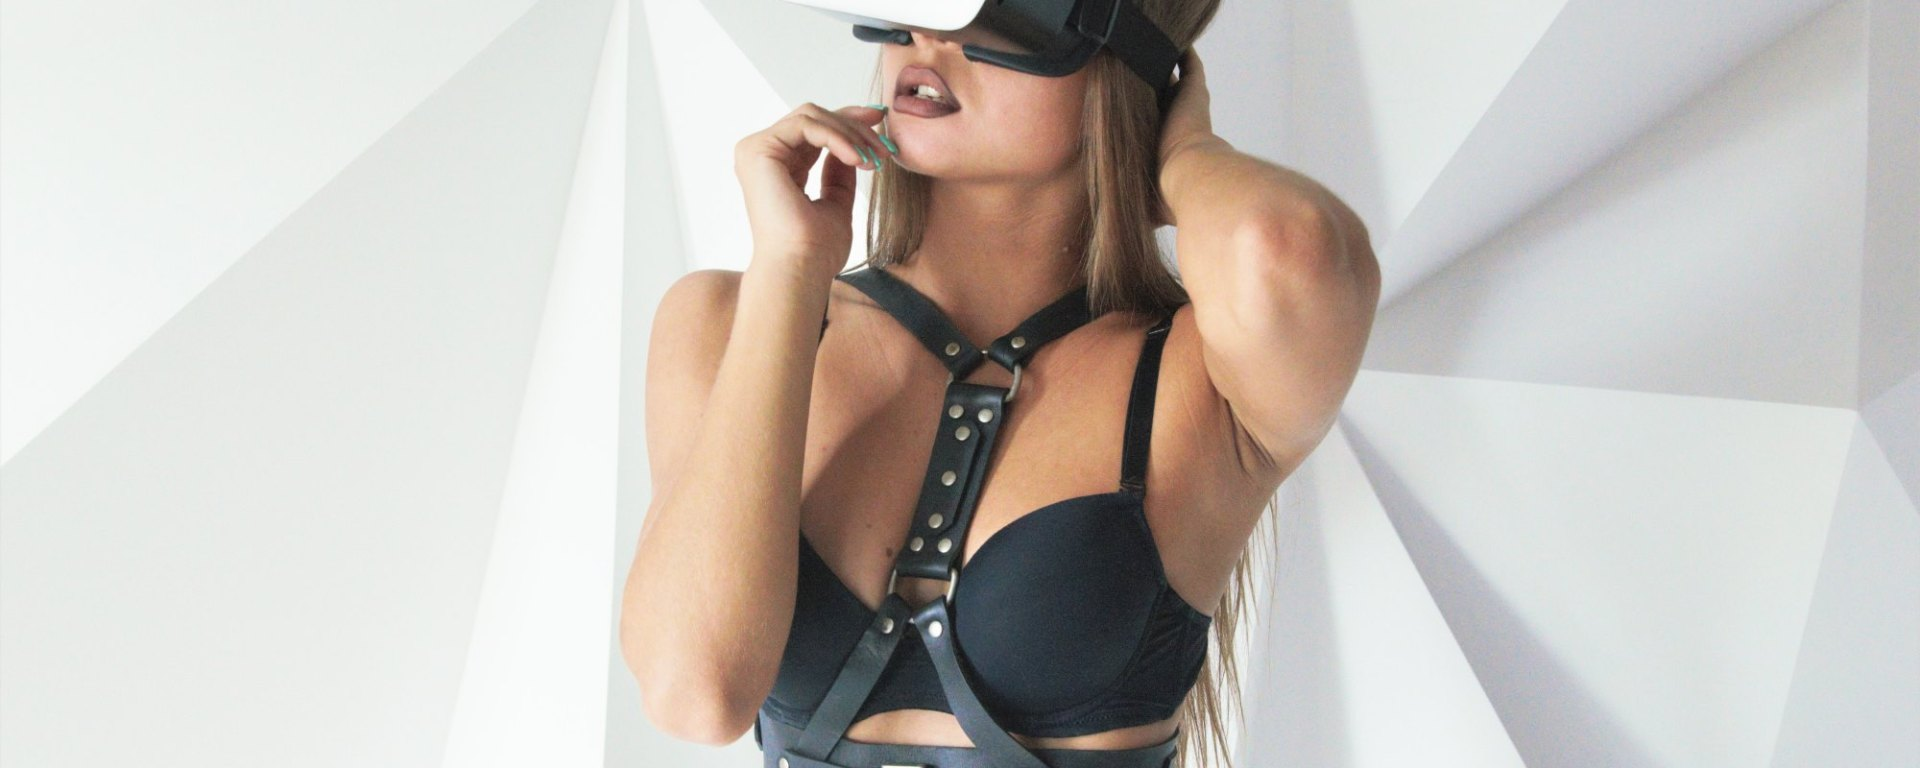 Adult Porn Blog porn trends of 2017 (virtual reality porn, cams, personal